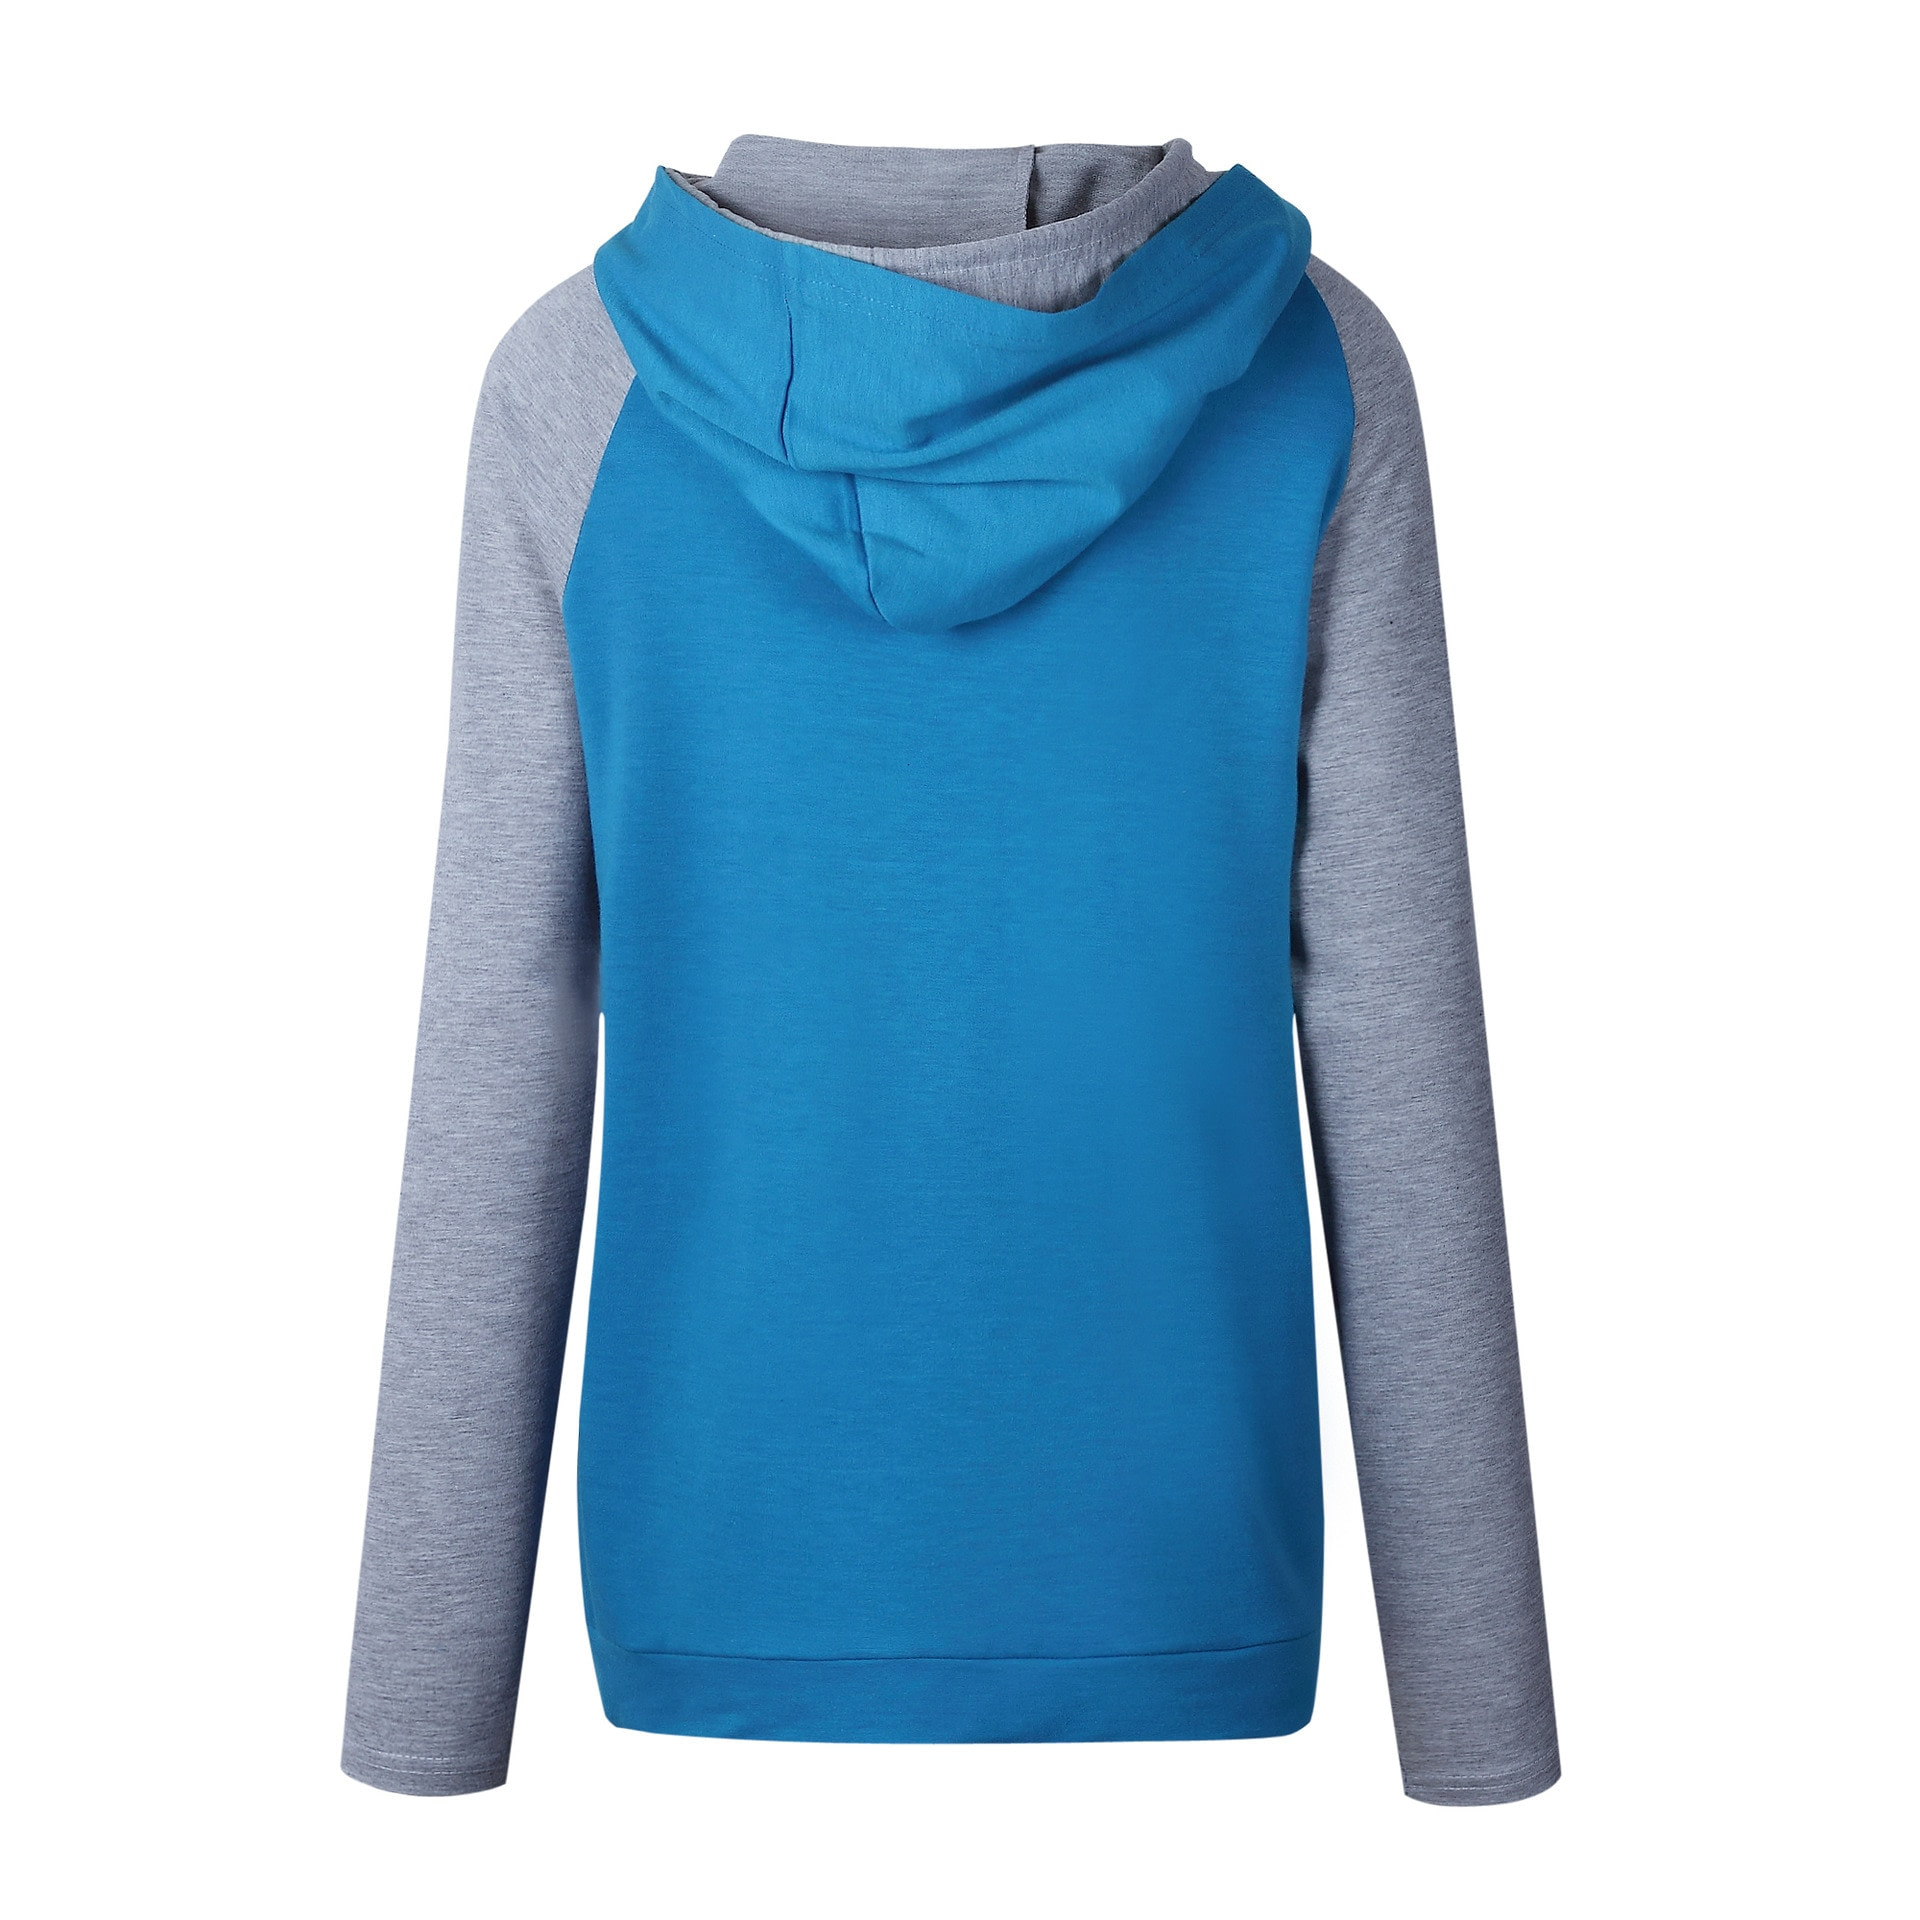 Women's Patchwork Striped Pullover Long Sleeve Hoodie, Tops With Pockets, Hooded Sweatshirt 29